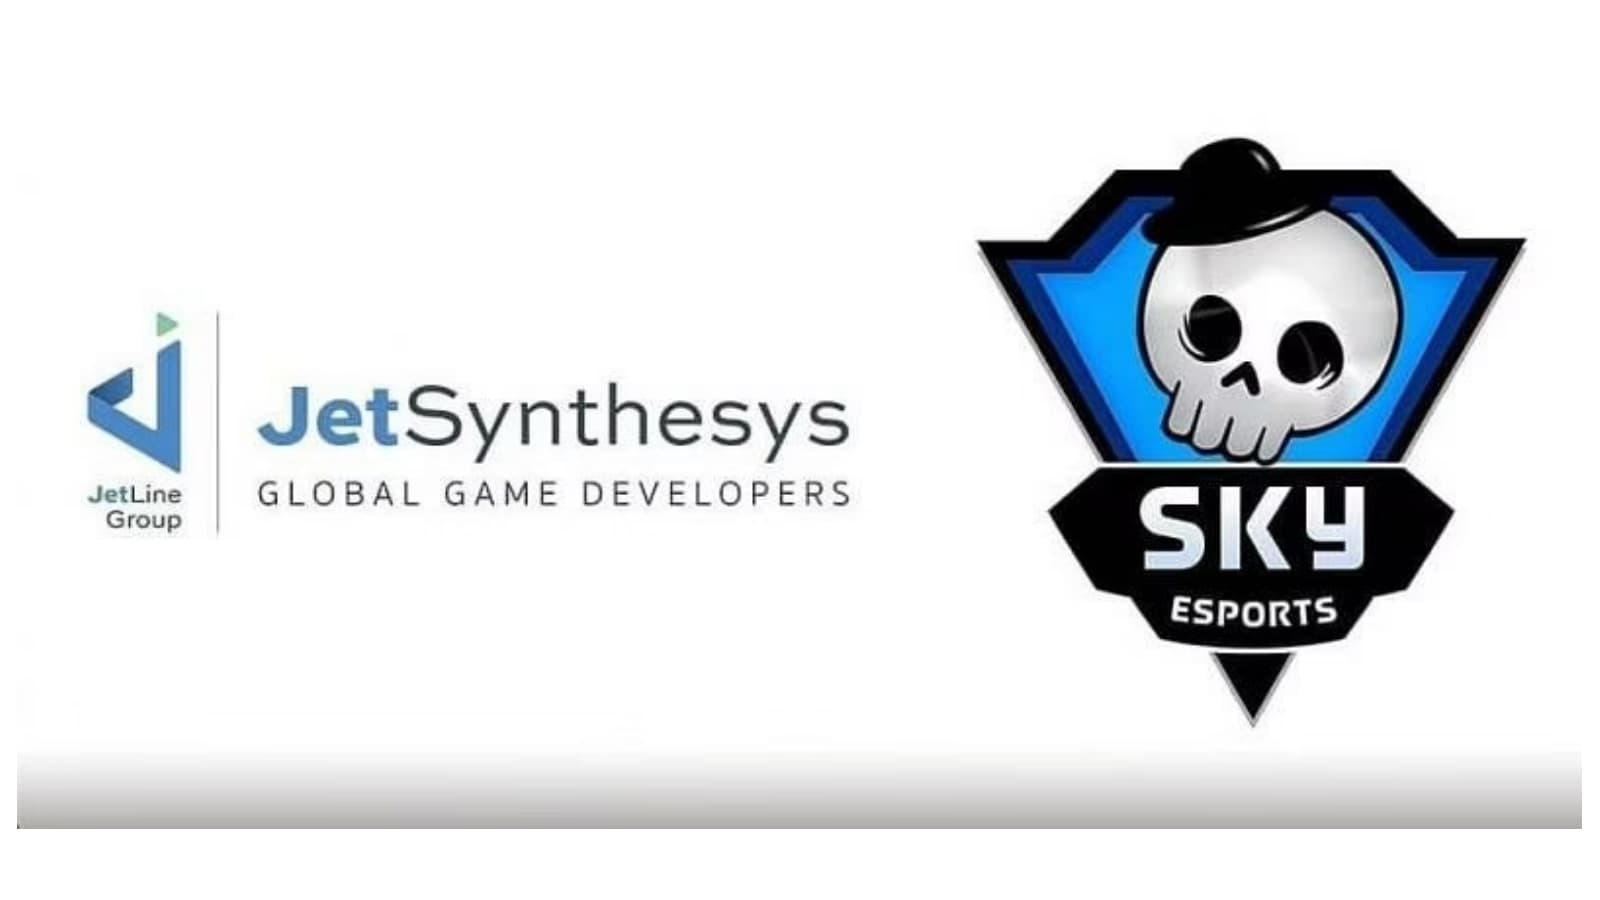 JetSynthesys Acquires Skyesports: 65% Stake to Boost eSports Company